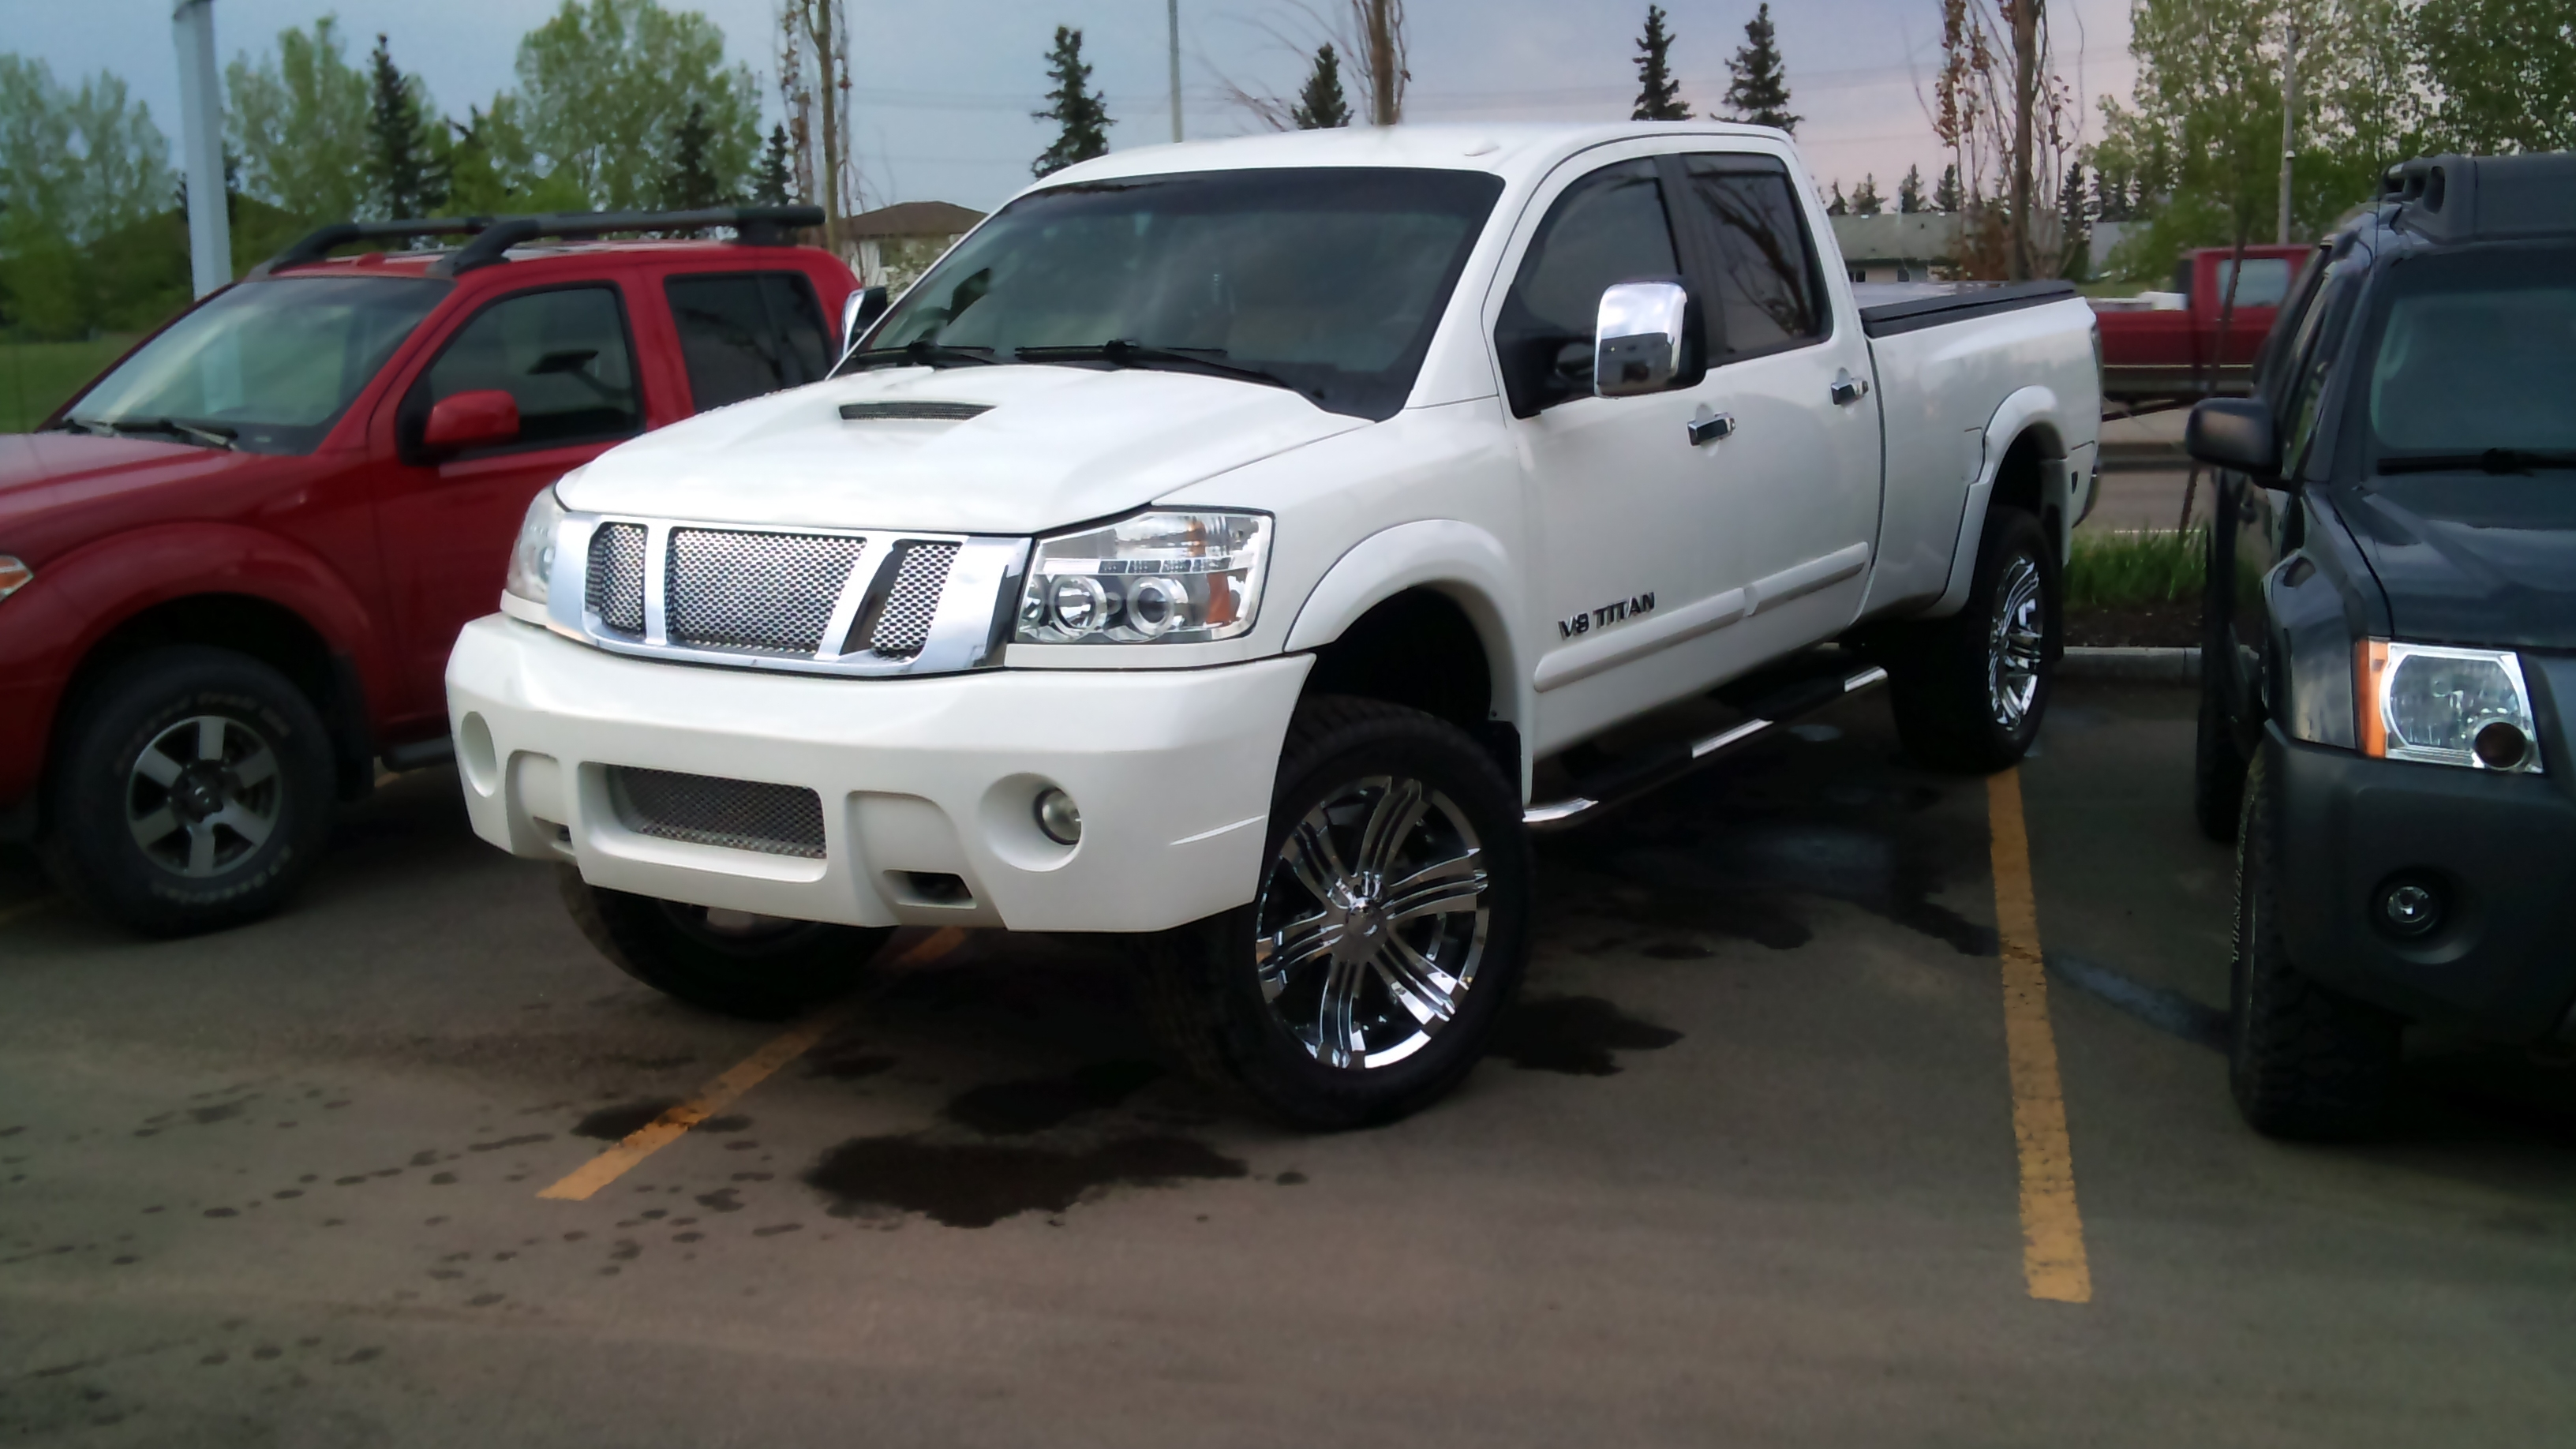 rafals 39 s 2008 nissan titan crew cab in grande prairie ab. Black Bedroom Furniture Sets. Home Design Ideas